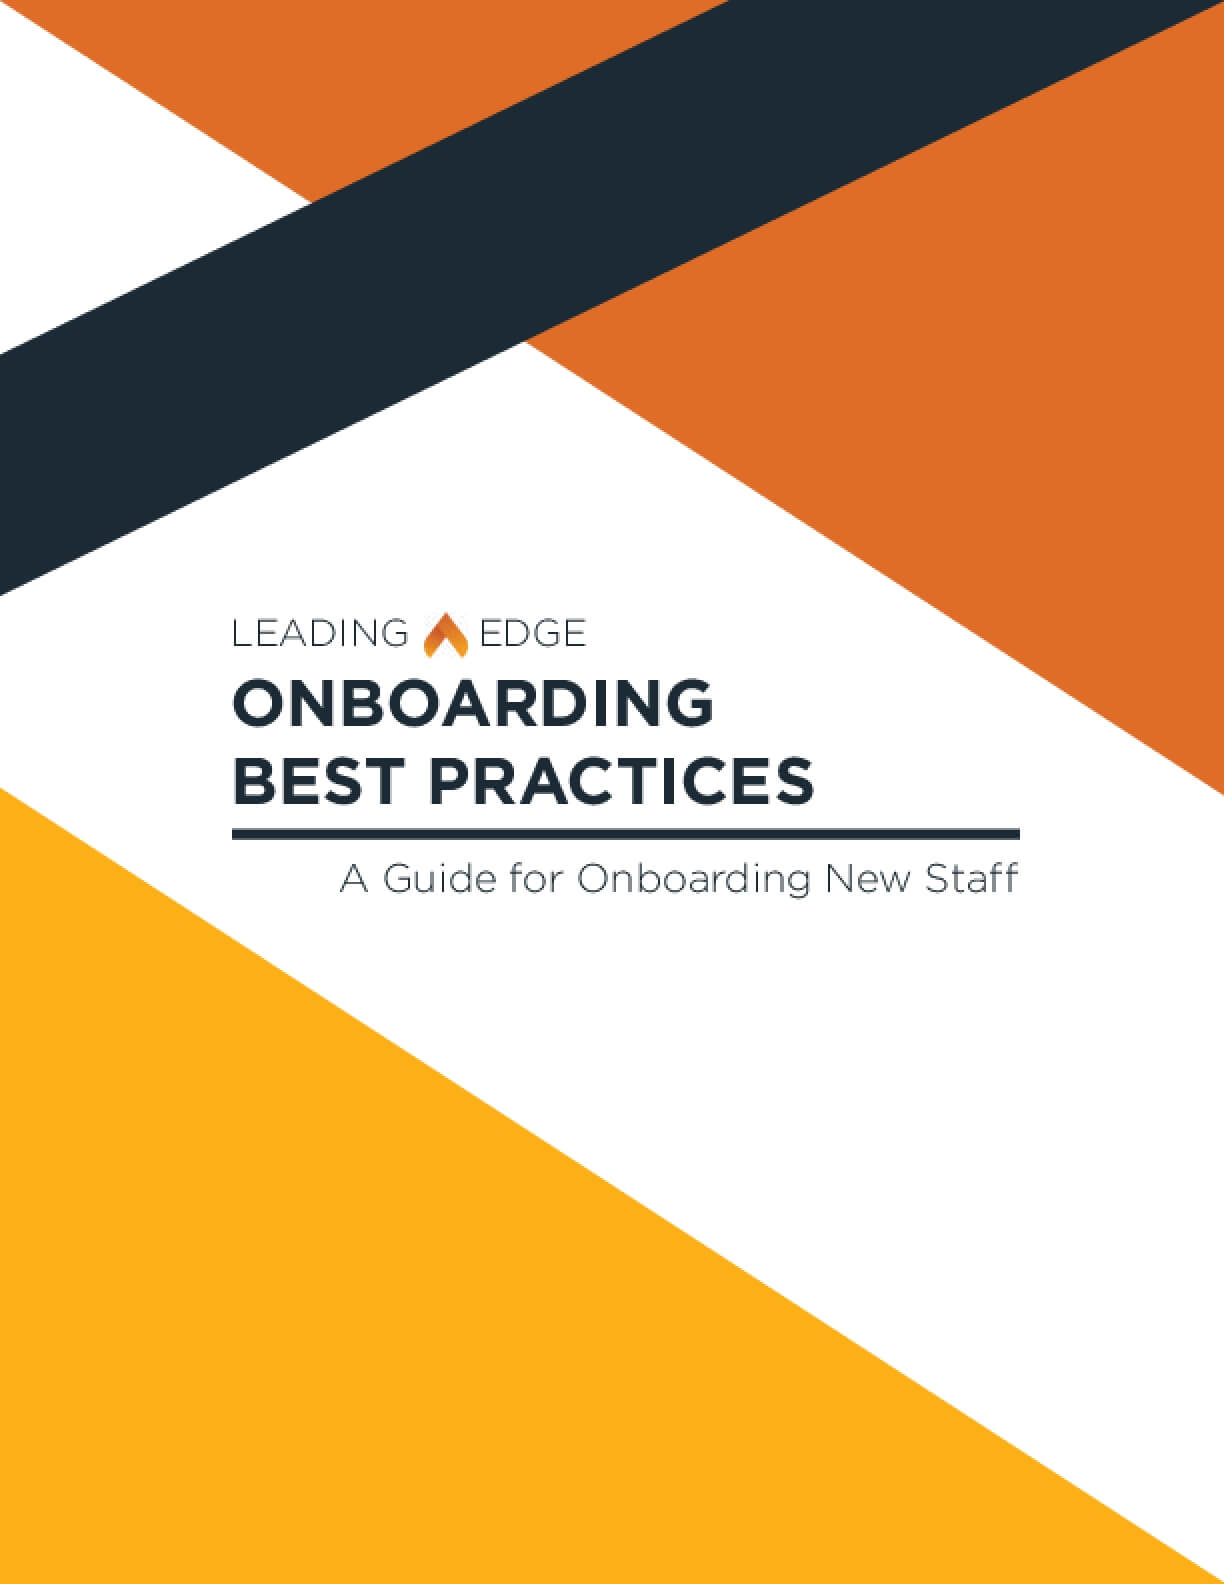 Onboarding Best Practices: A Guide for Onboarding New Staff